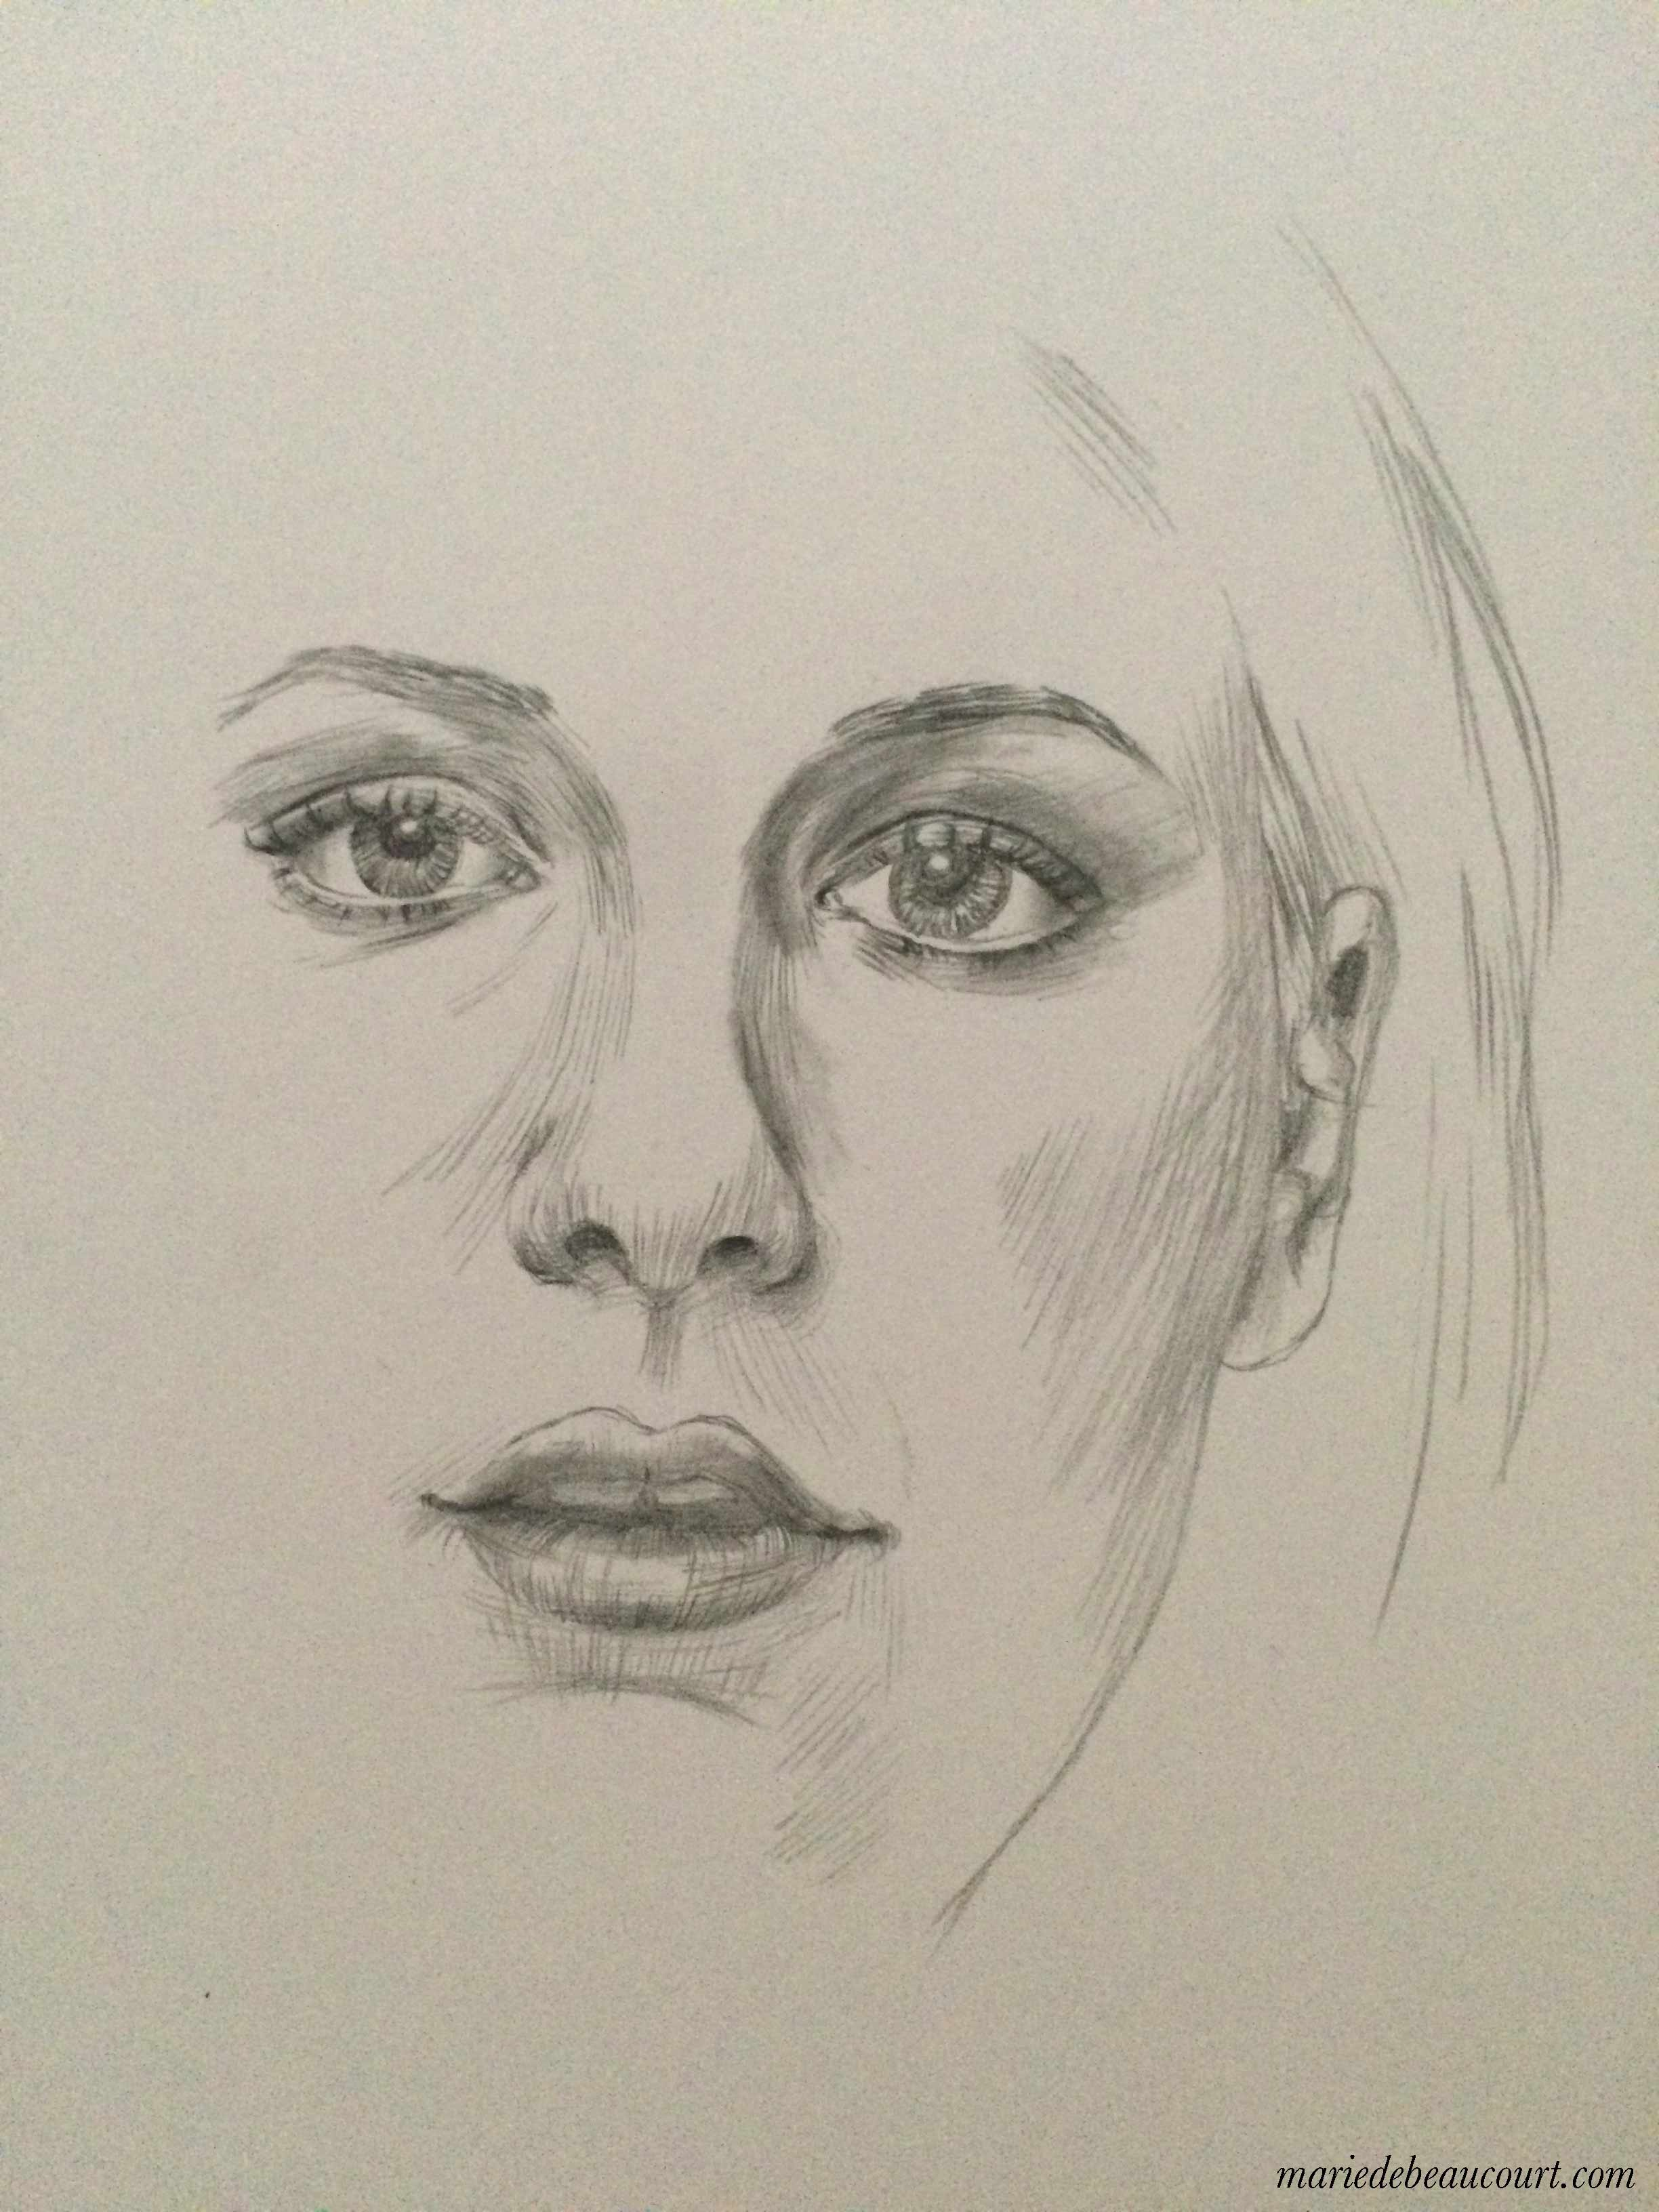 marie-de-beaucourt-illustration-portrait-work-in-progress-6.jpg